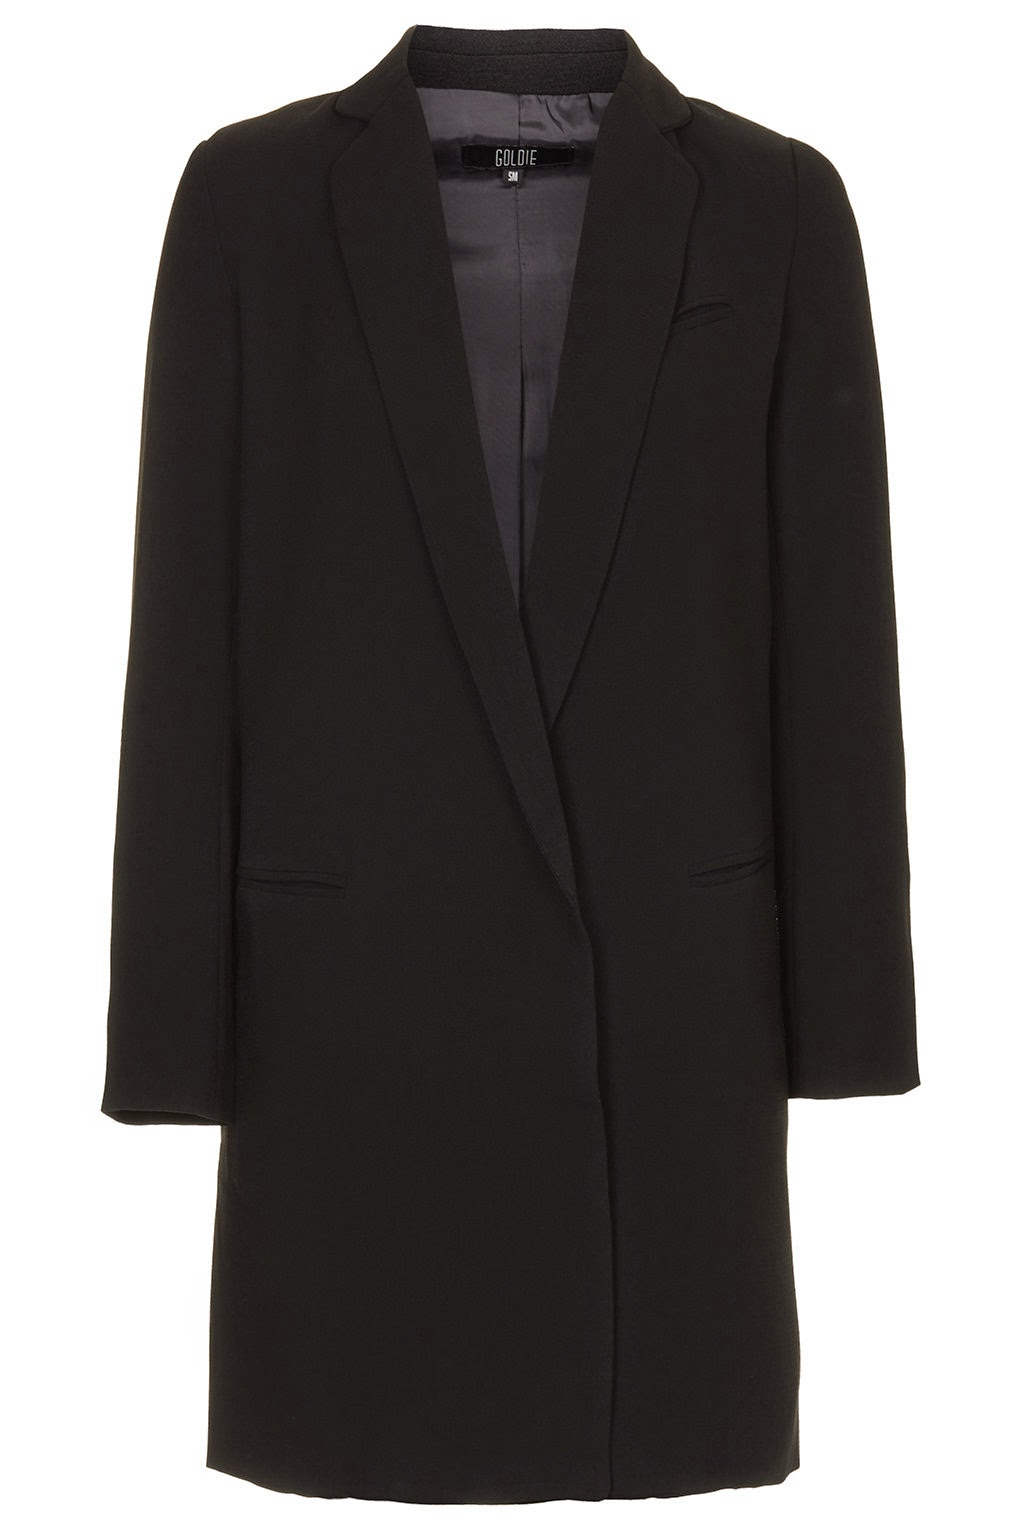 black blazer long length